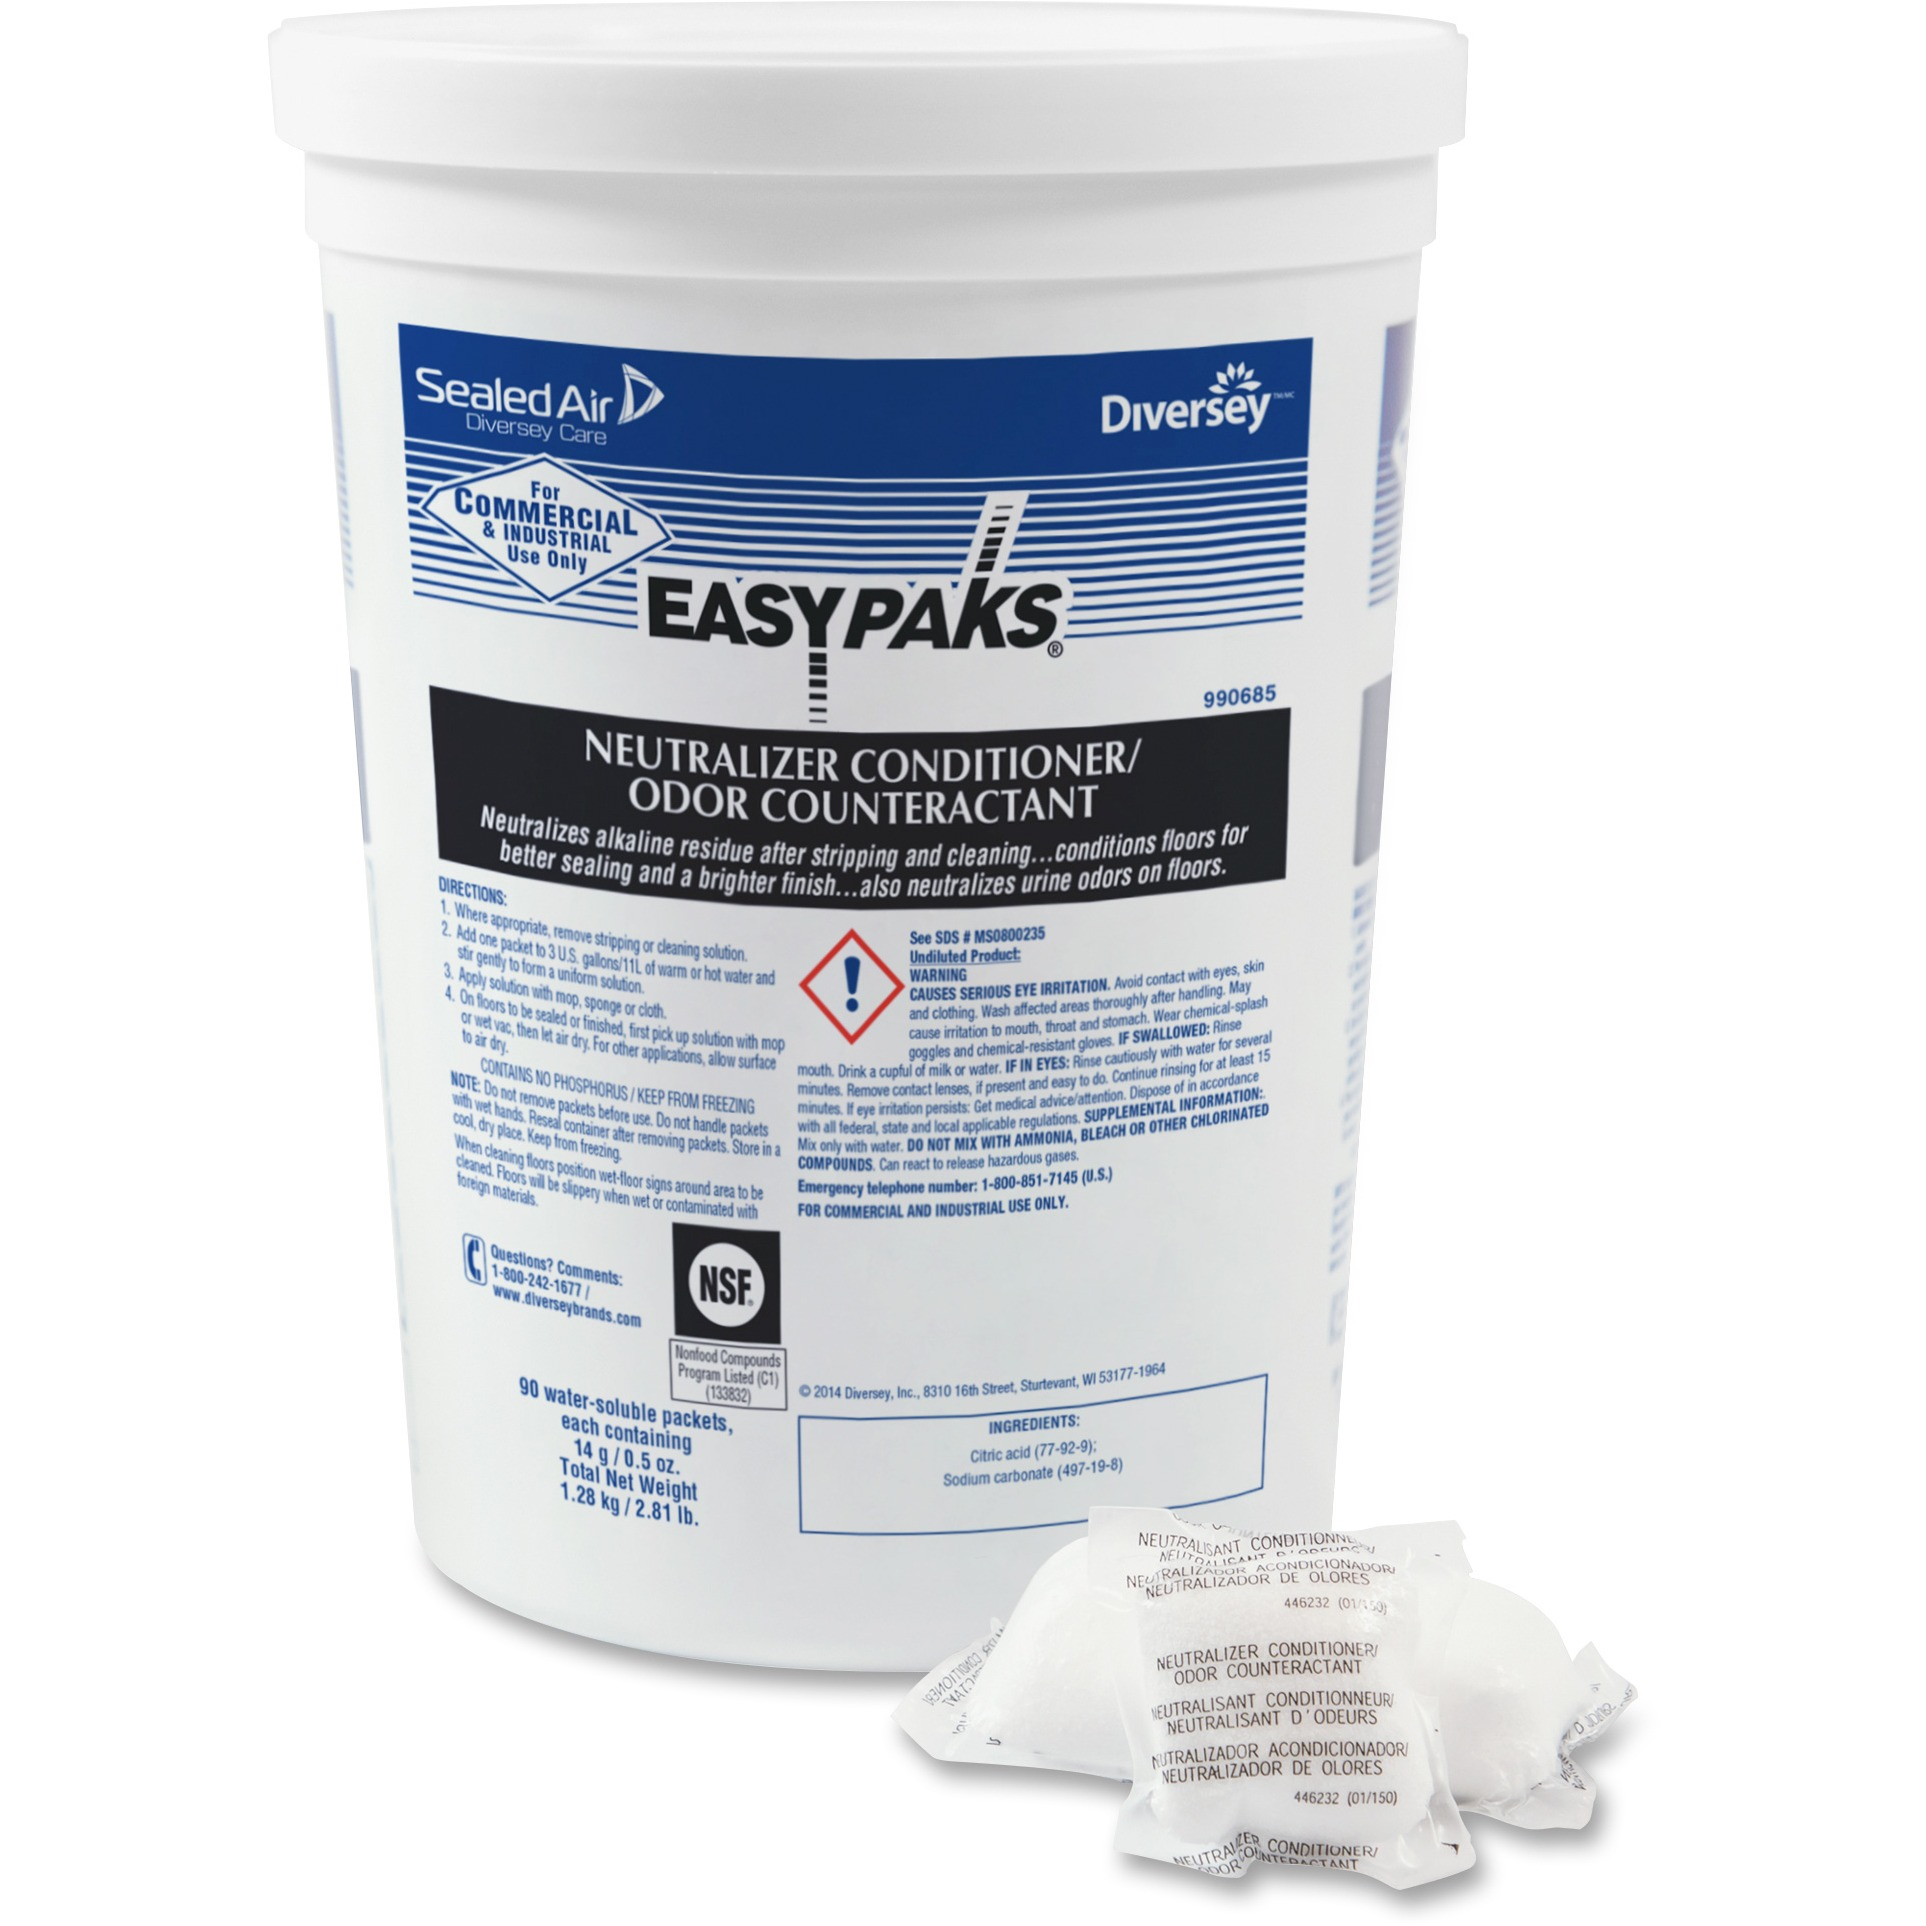 Diversey Easy Paks Neutral Odor Counteractant  - DVO990685CT